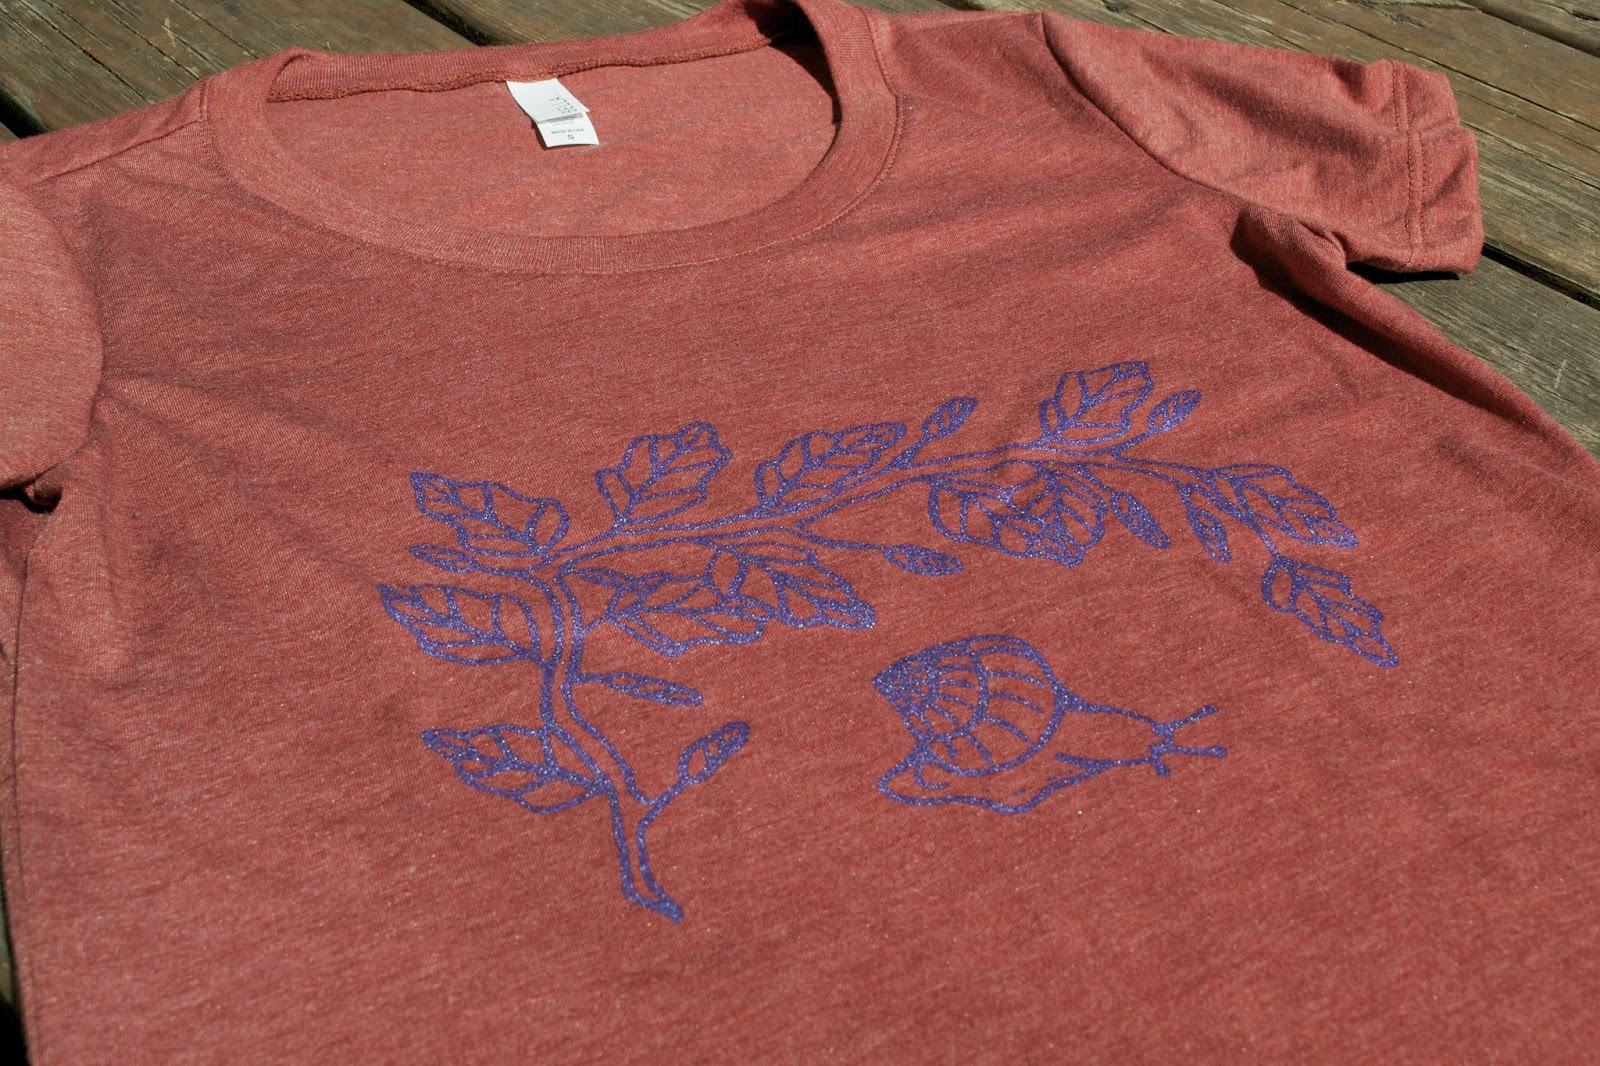 "New design ""Gastropod""/snail under a leafy branch hand printed on a light bright red, triblend women's tee."